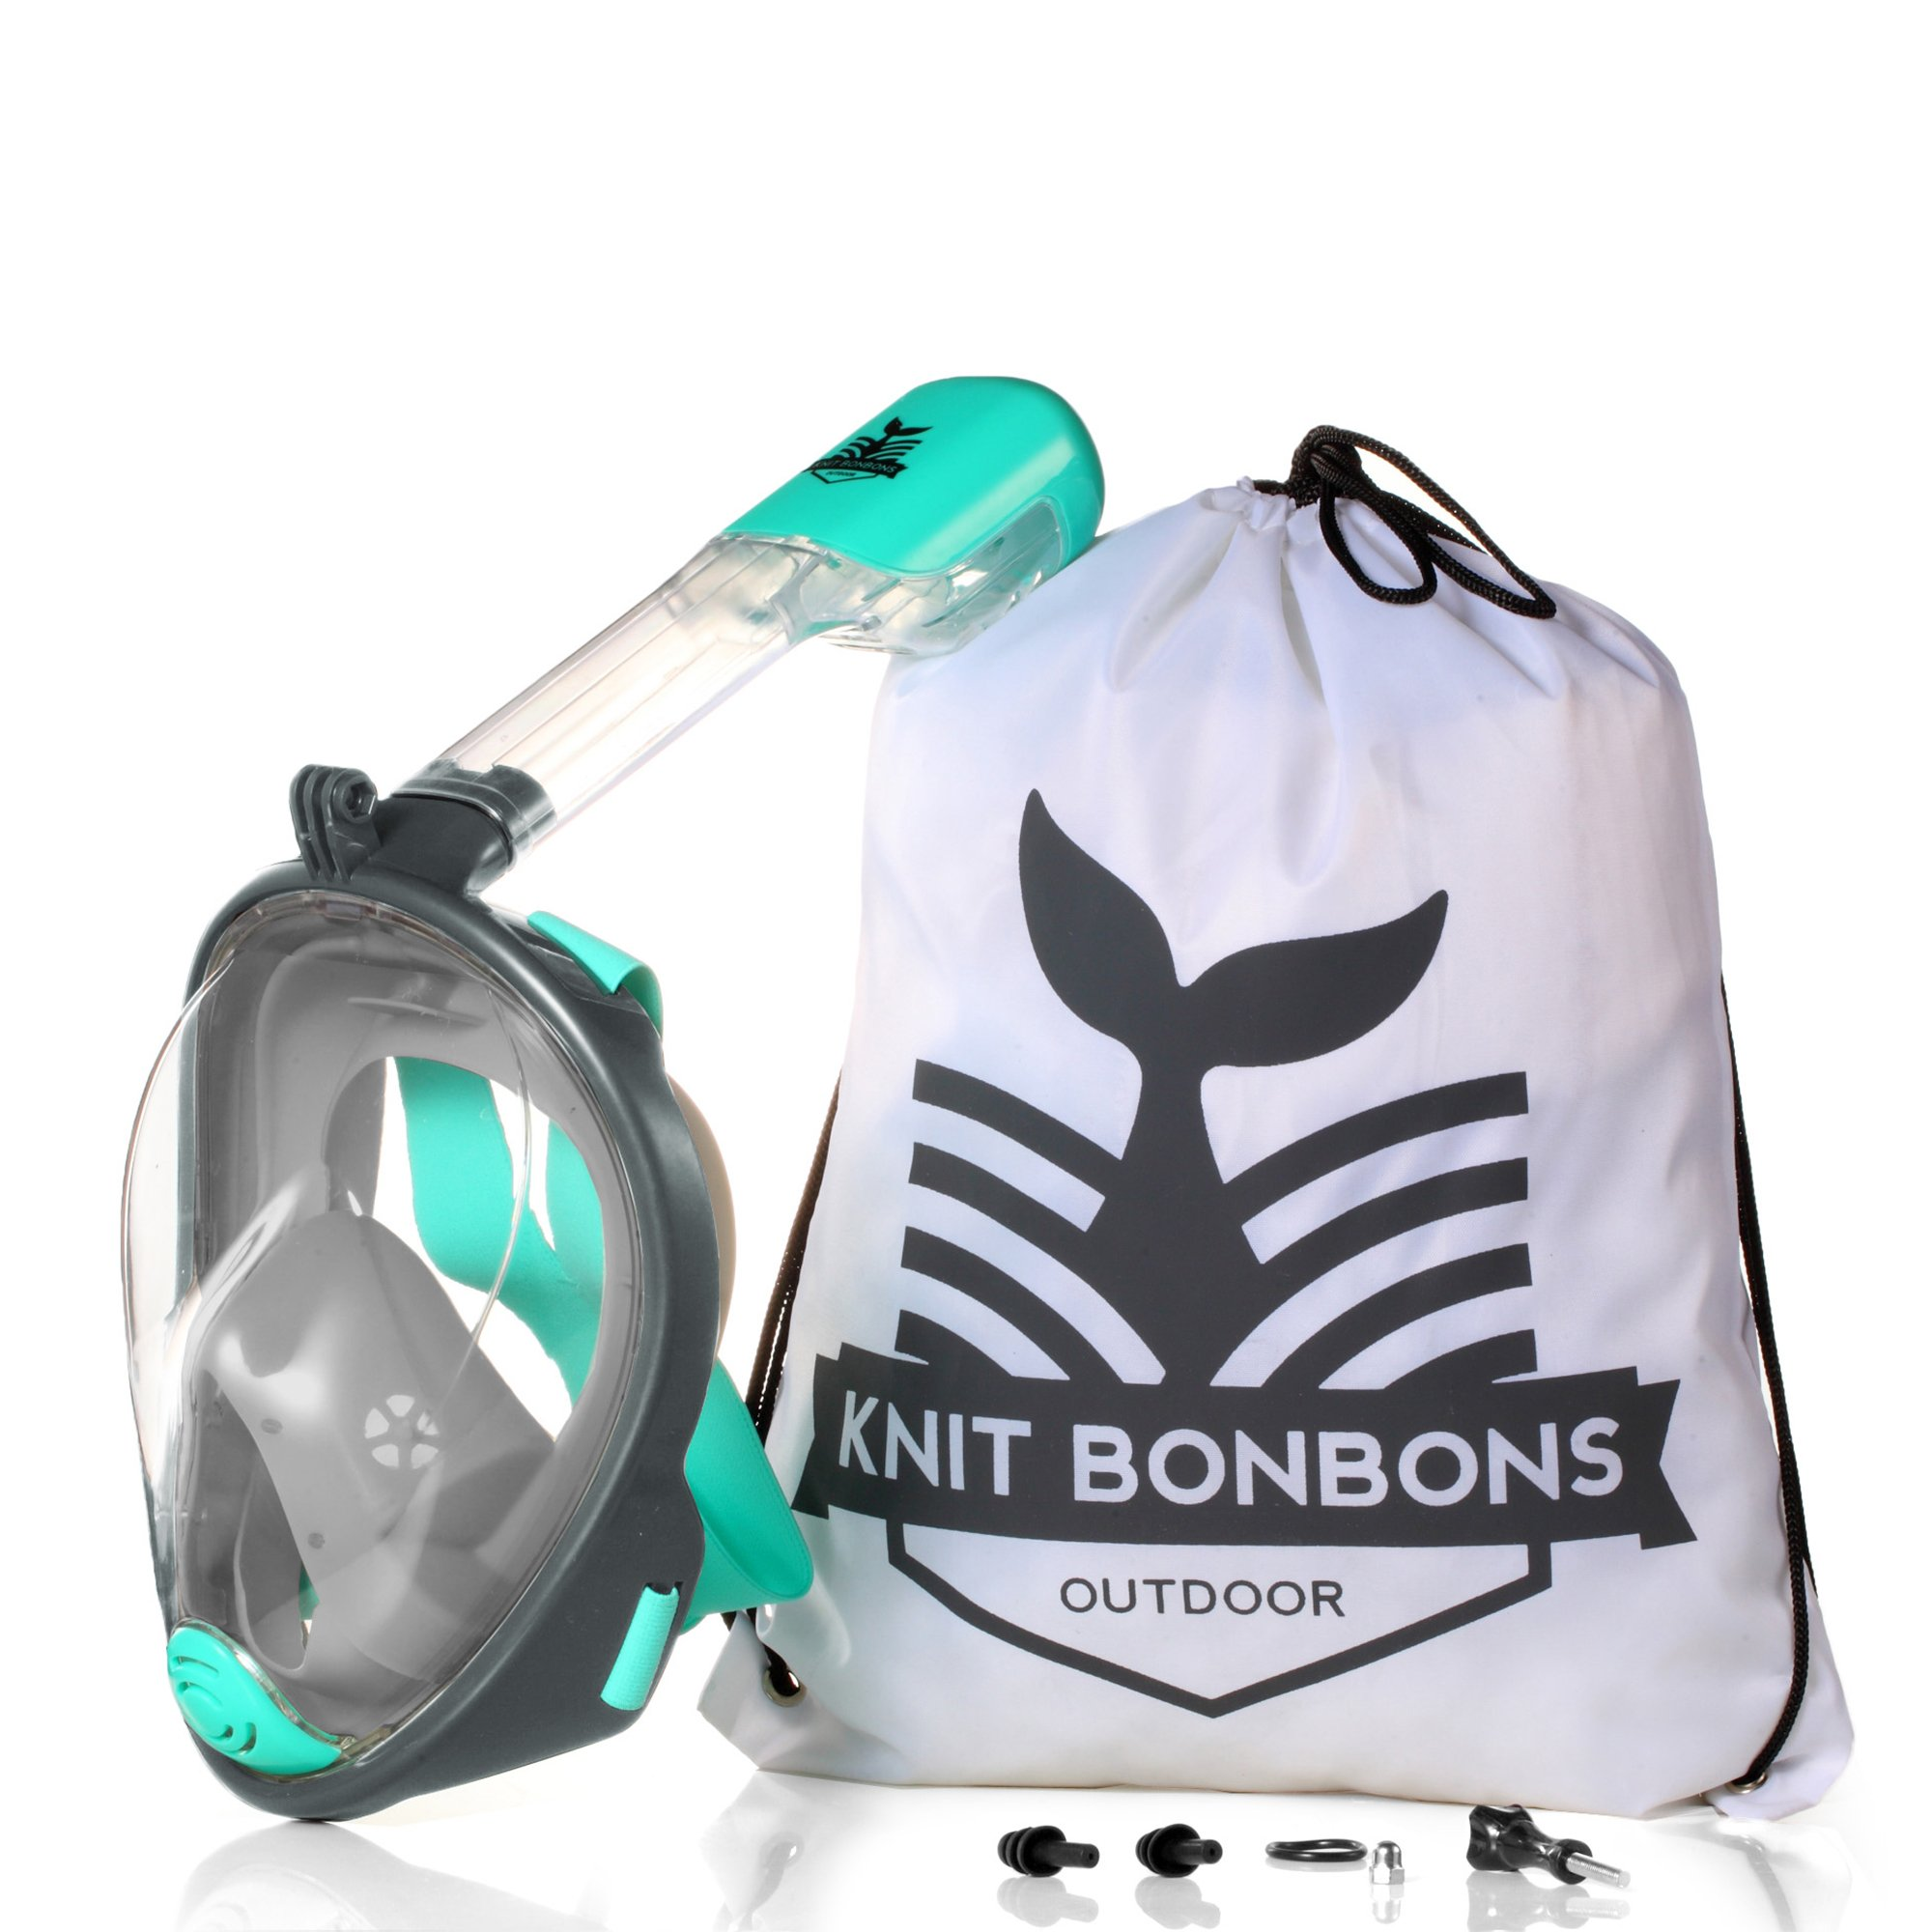 180° Panoramic View Snorkel Mask Full Face Scuba, Dive and Swim Set for Kids Youth Adult Women Men | Easier Breath with Dry Anti-Fog Anti-Leak for Travel Beach Sea Underwater Swimming Pool by Knit Bonbons Outdoor